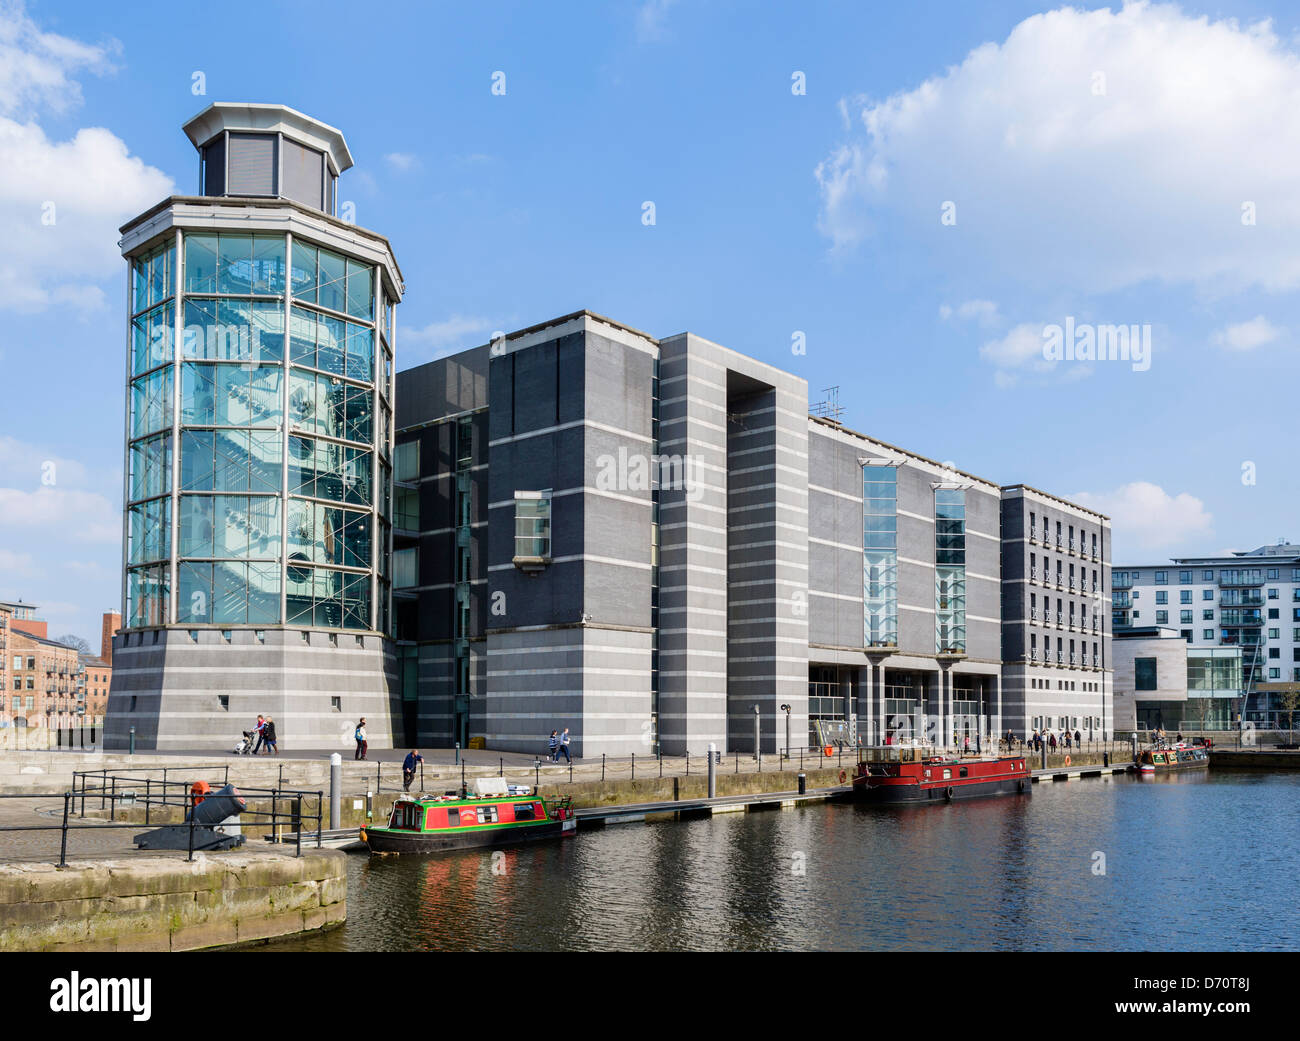 Le Royal Armouries Museum à Clarence Dock, Leeds, West Yorkshire, Royaume-Uni Photo Stock